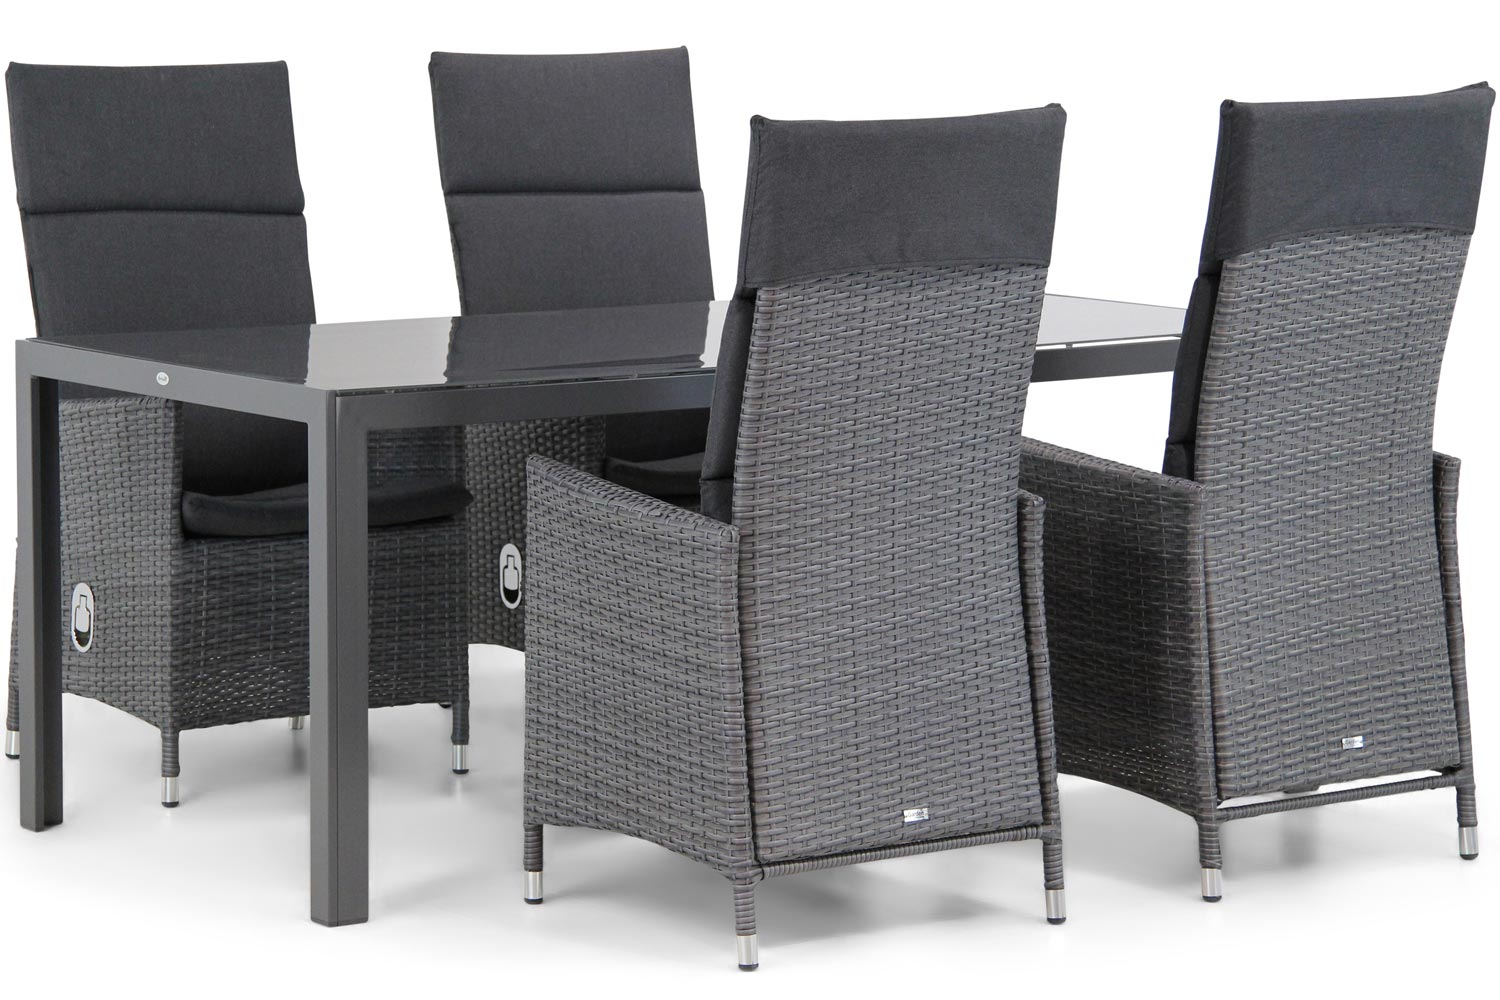 Wicker Garden Collections Denver/Canberra 180 cm dining tuinset 5-delig